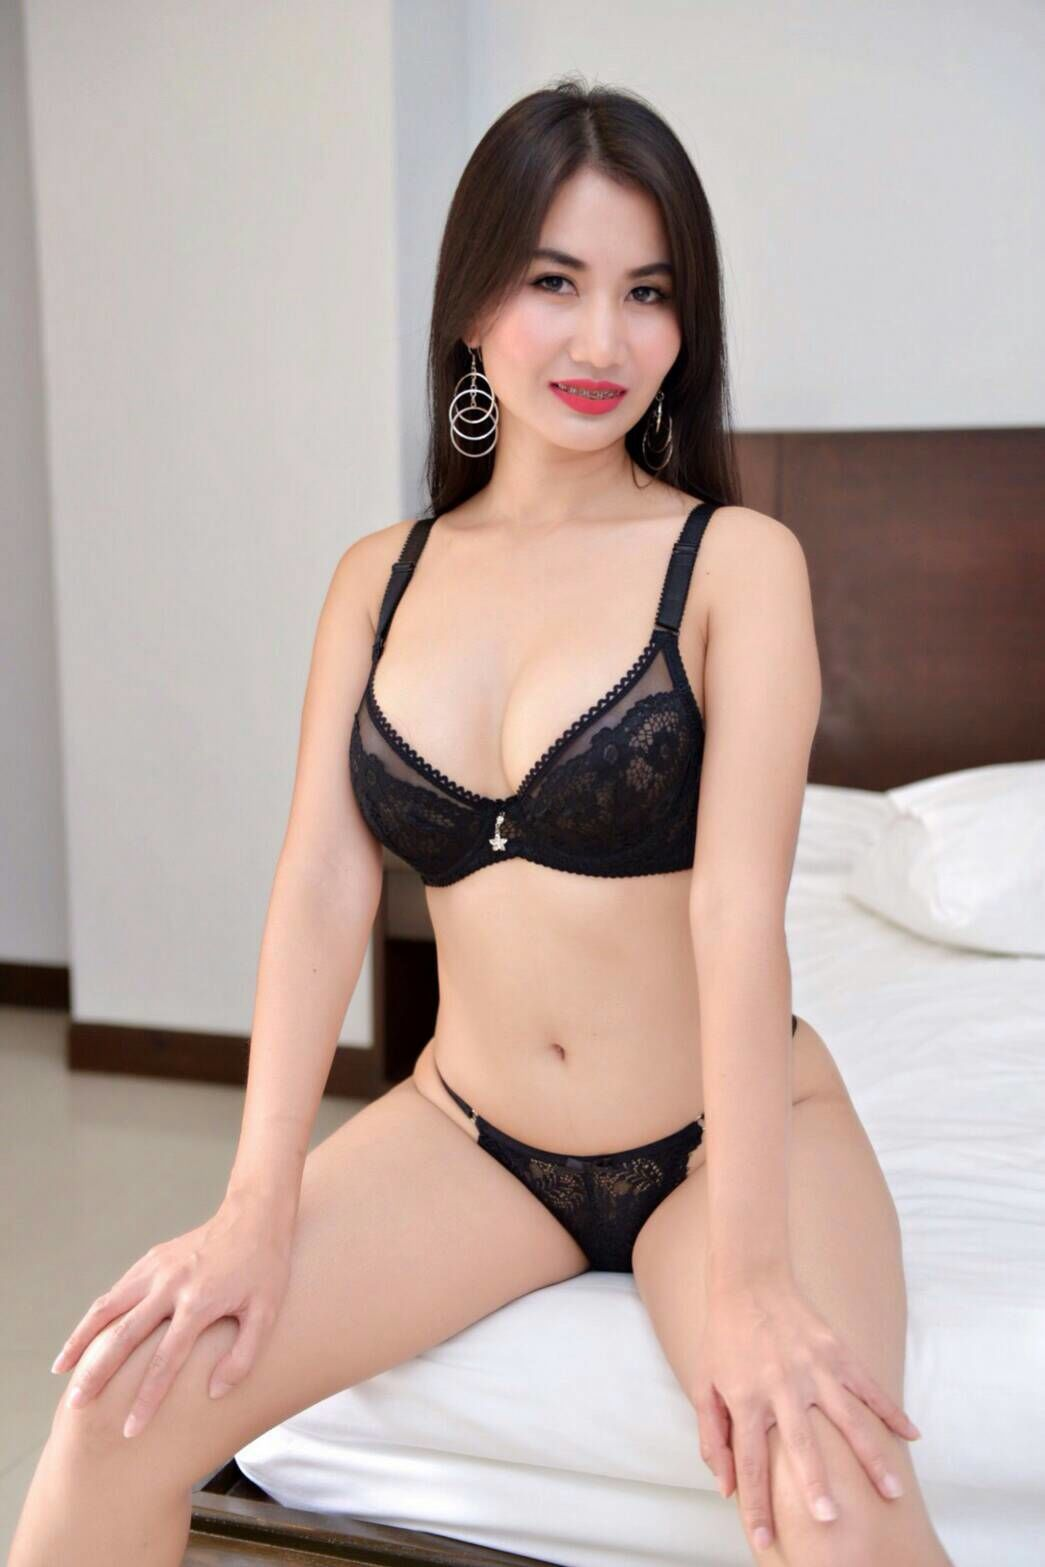 cucold russian escorts in phuket